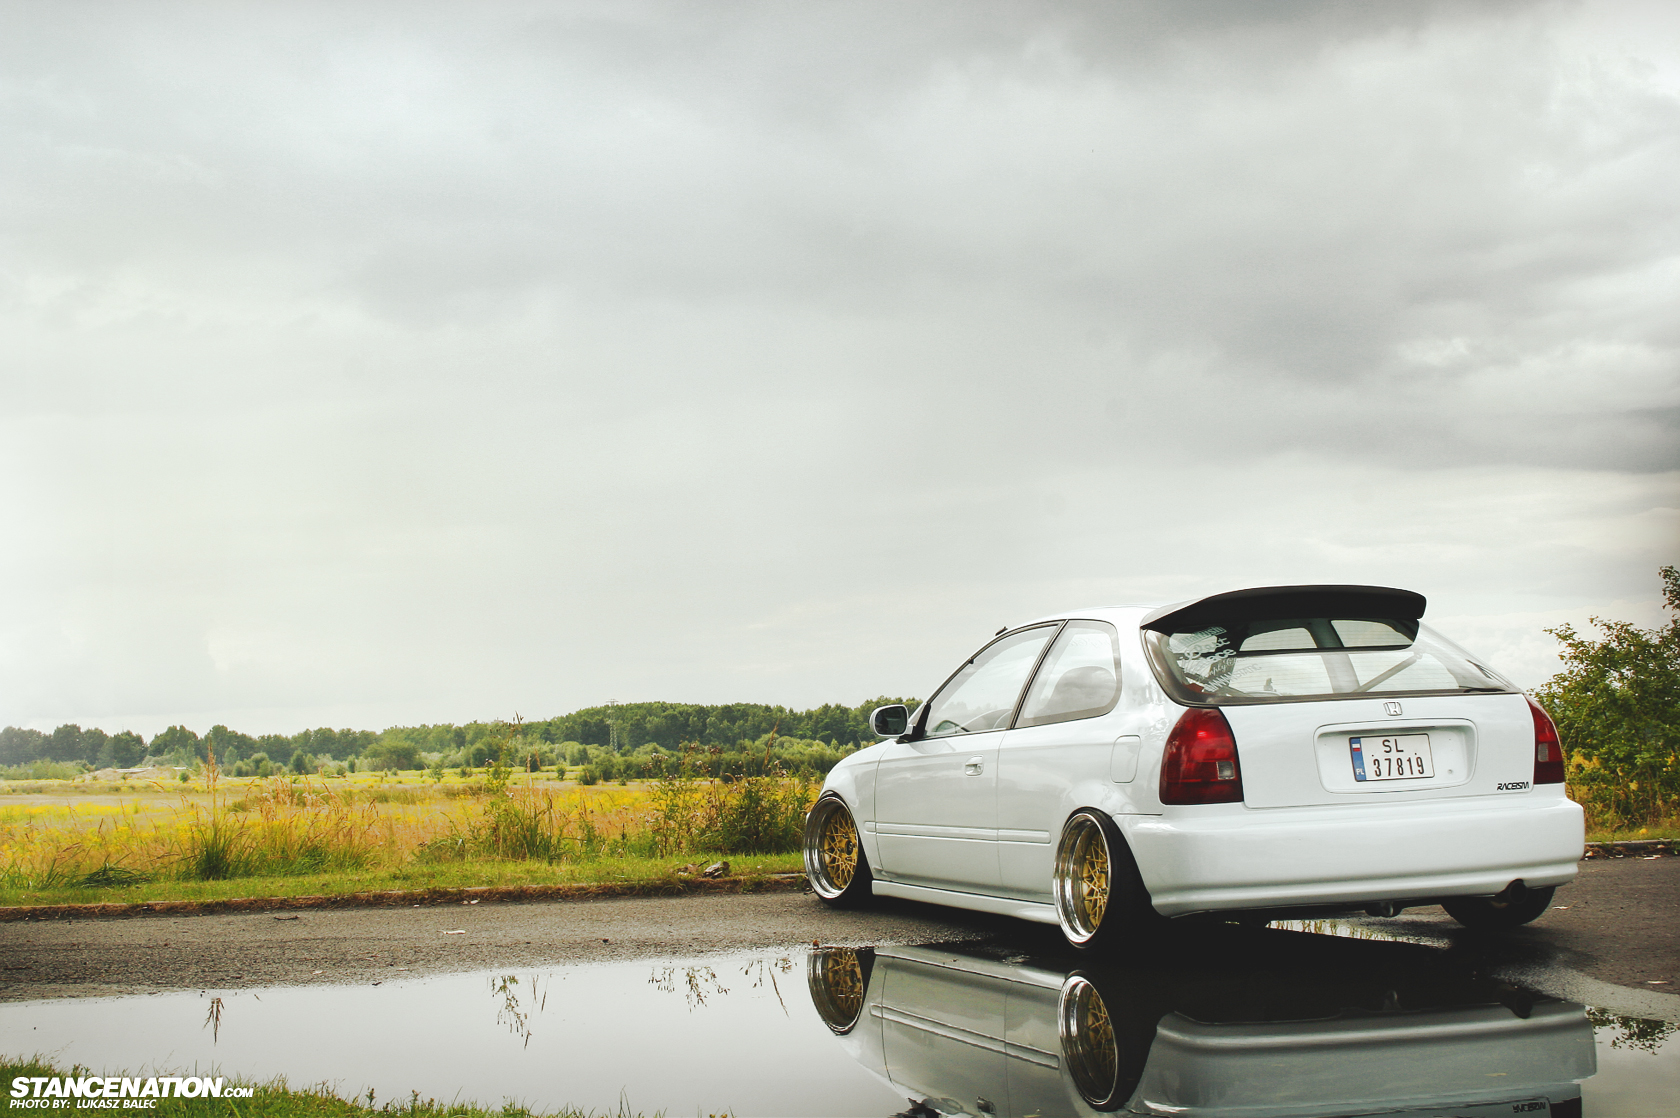 From Poland With Stance Stancenation Form Function 2012 Honda Civic Engine Wiring Harness Since 2008 When Lukas Purchased This It Has Seen Many Changes And Some That Have Even Gone Unmentioned Here Although Isnt Exactly What